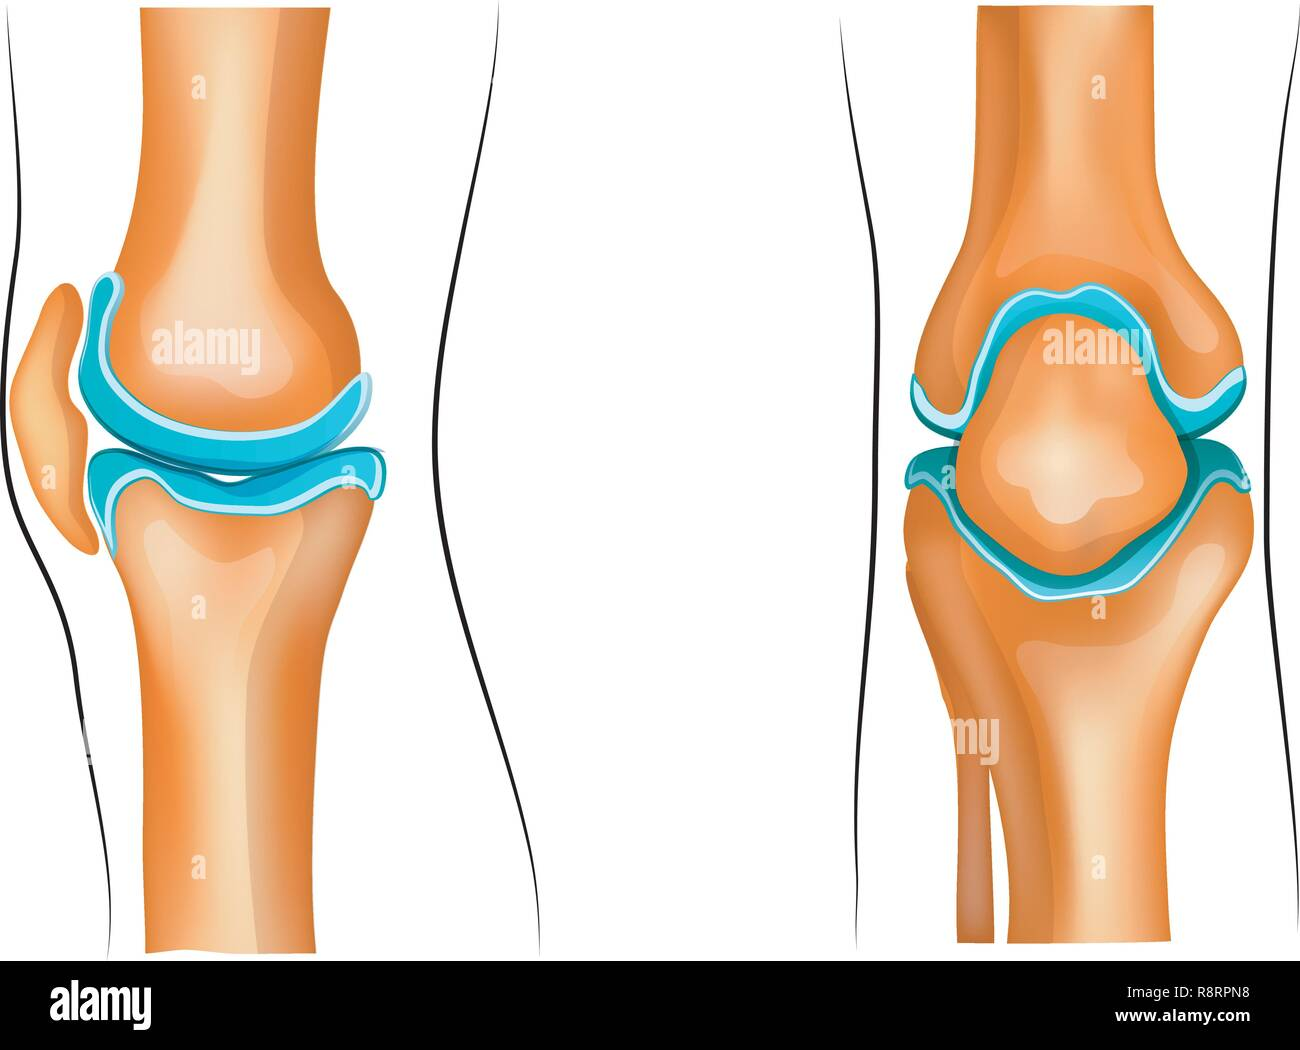 hight resolution of vector illustration of a healthy knee joint stock image